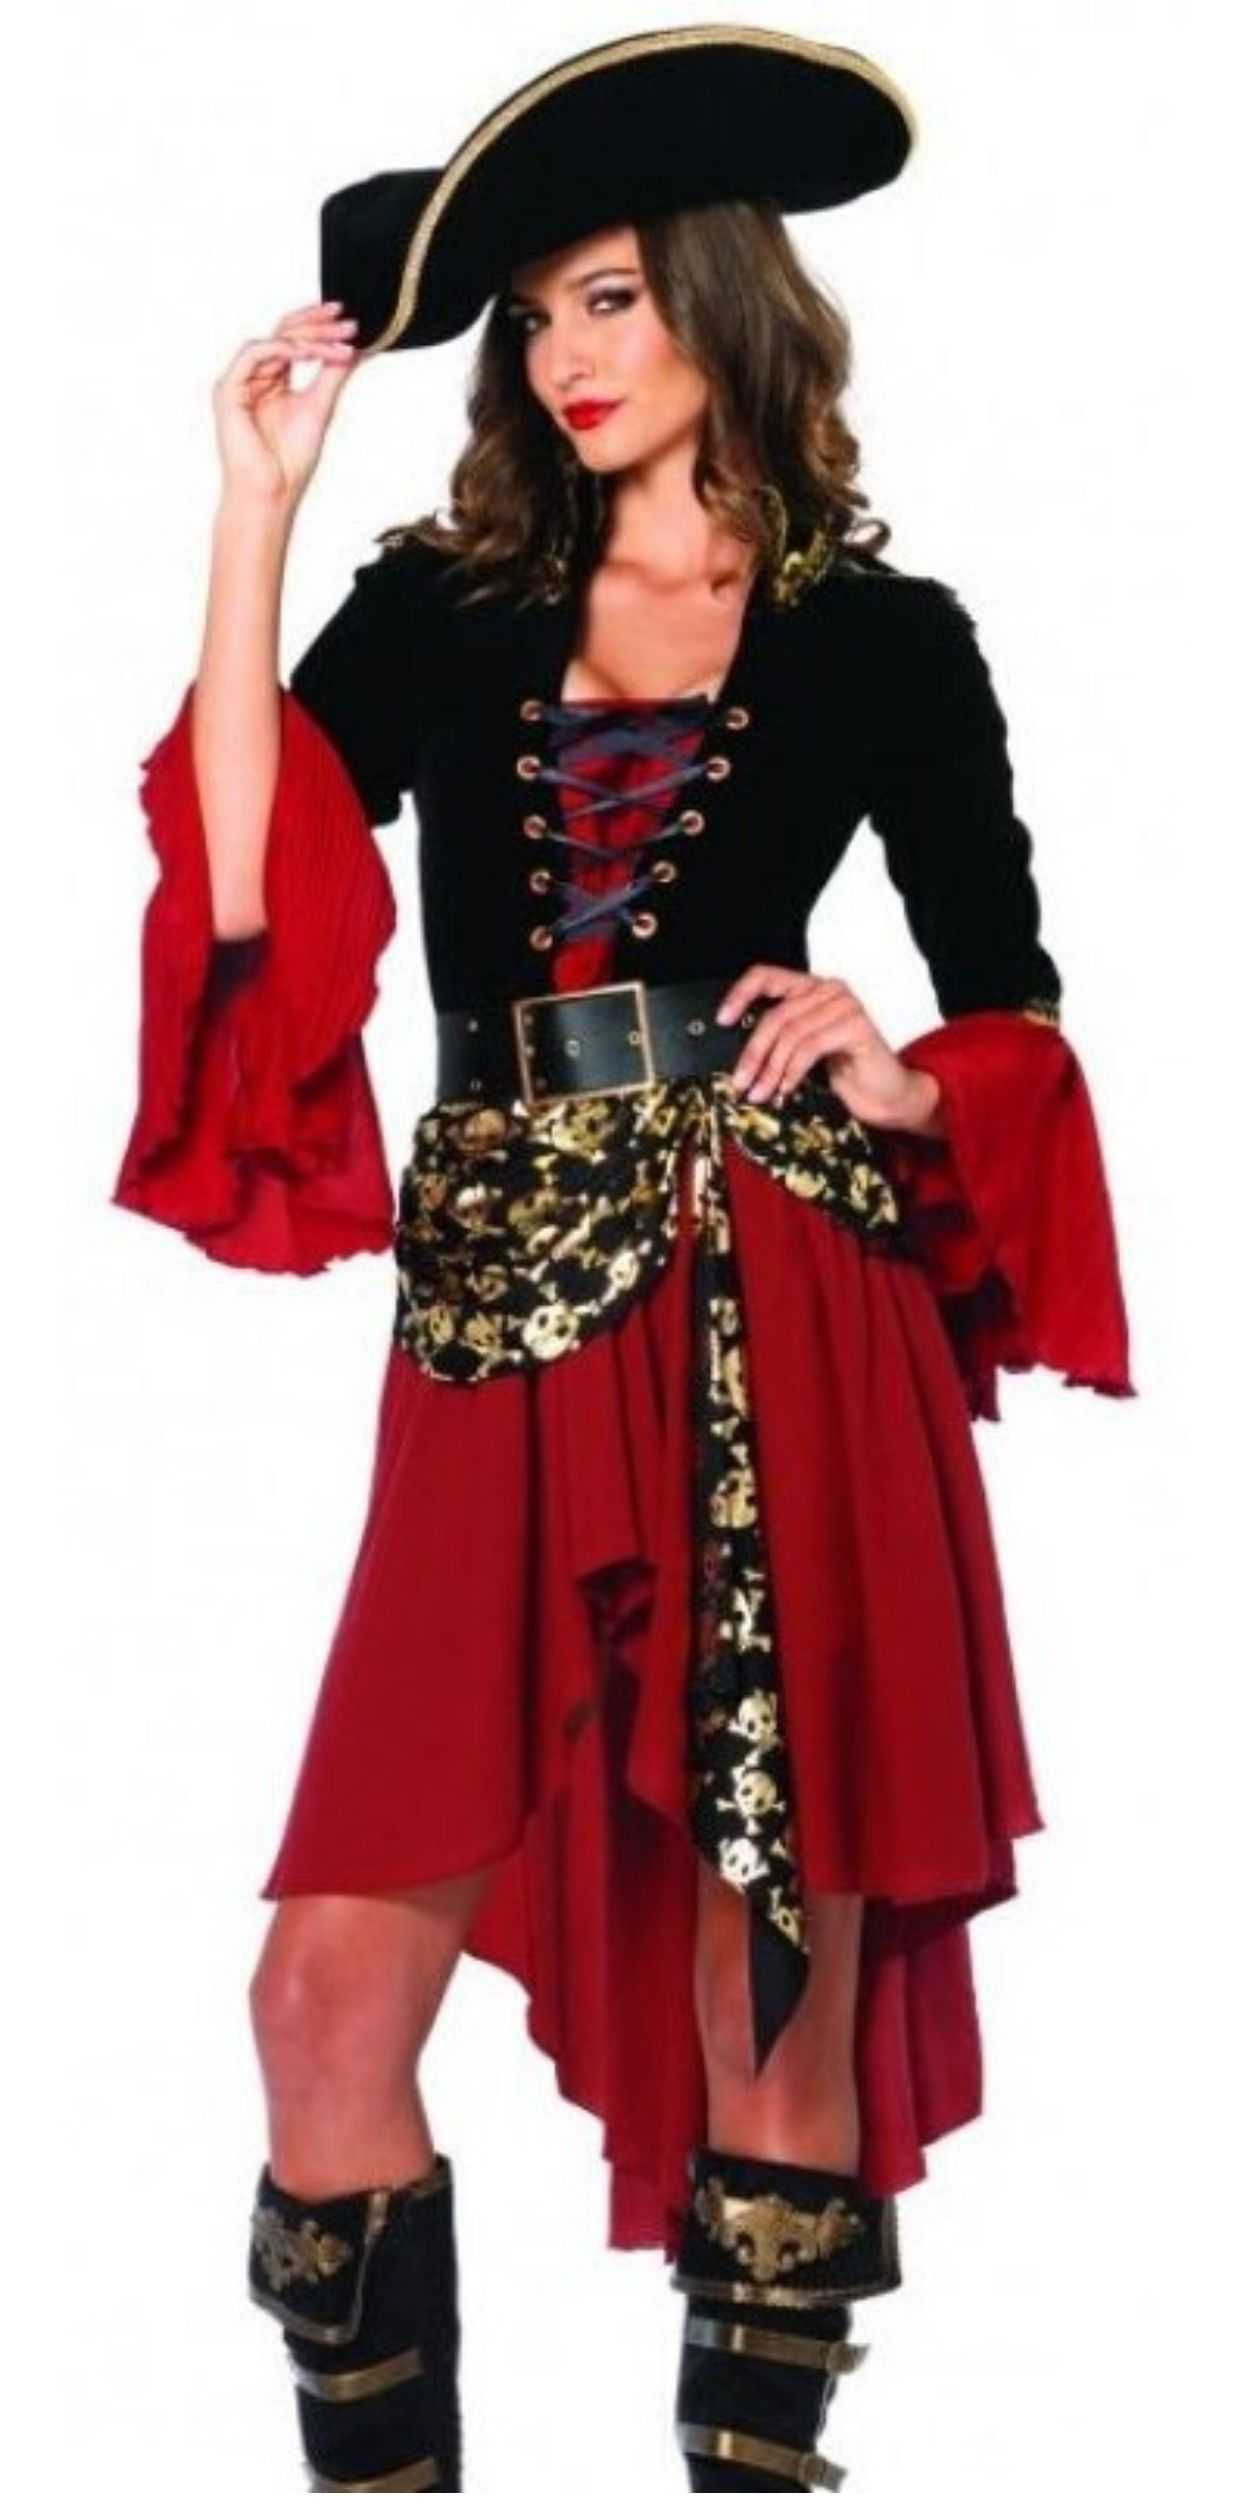 Woman in Pirate Party Costume